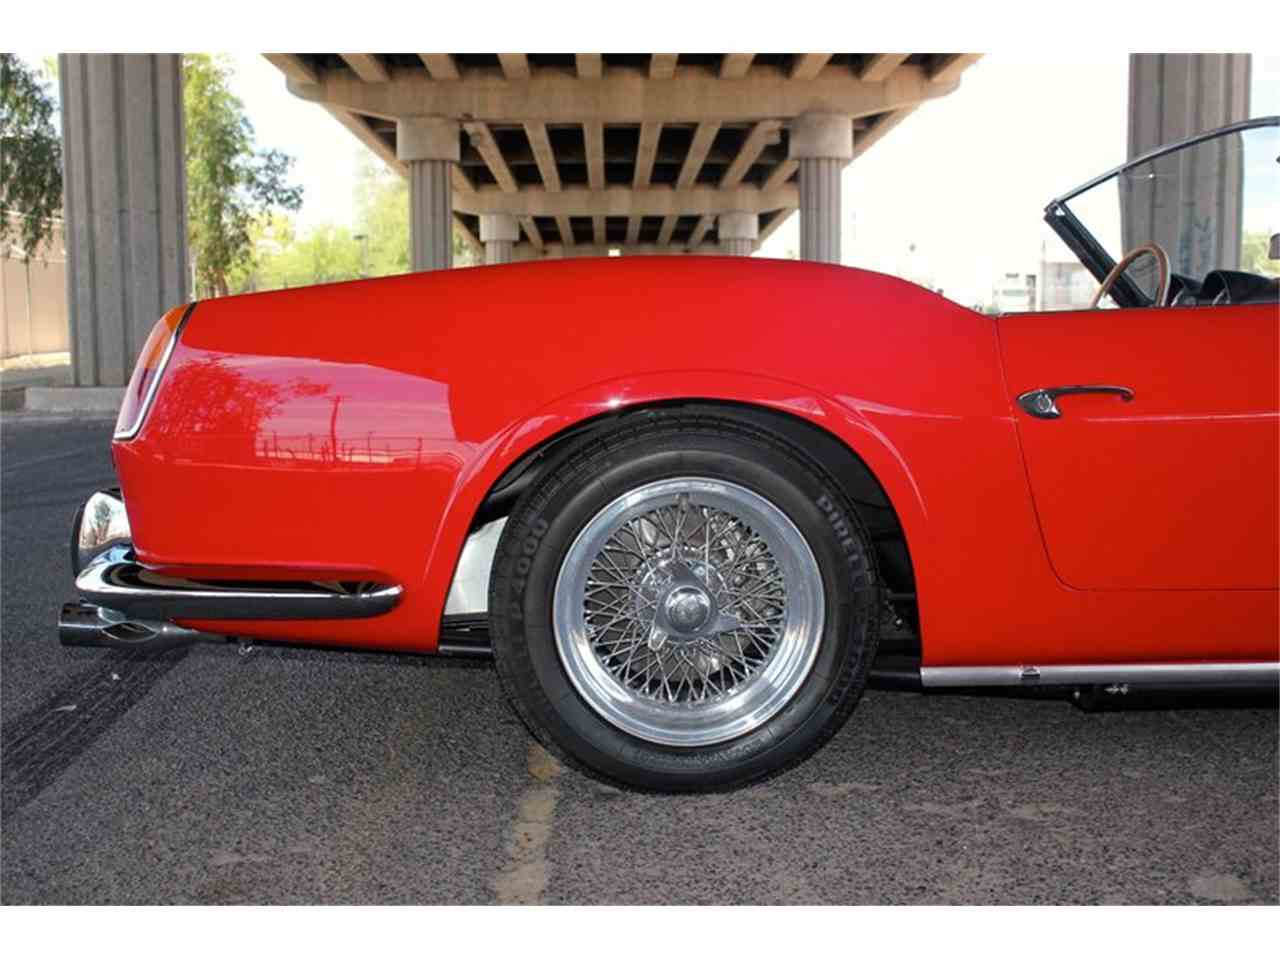 Large Picture of Classic '63 250 GTE California Spyder Auction Vehicle Offered by EMG - J2E5